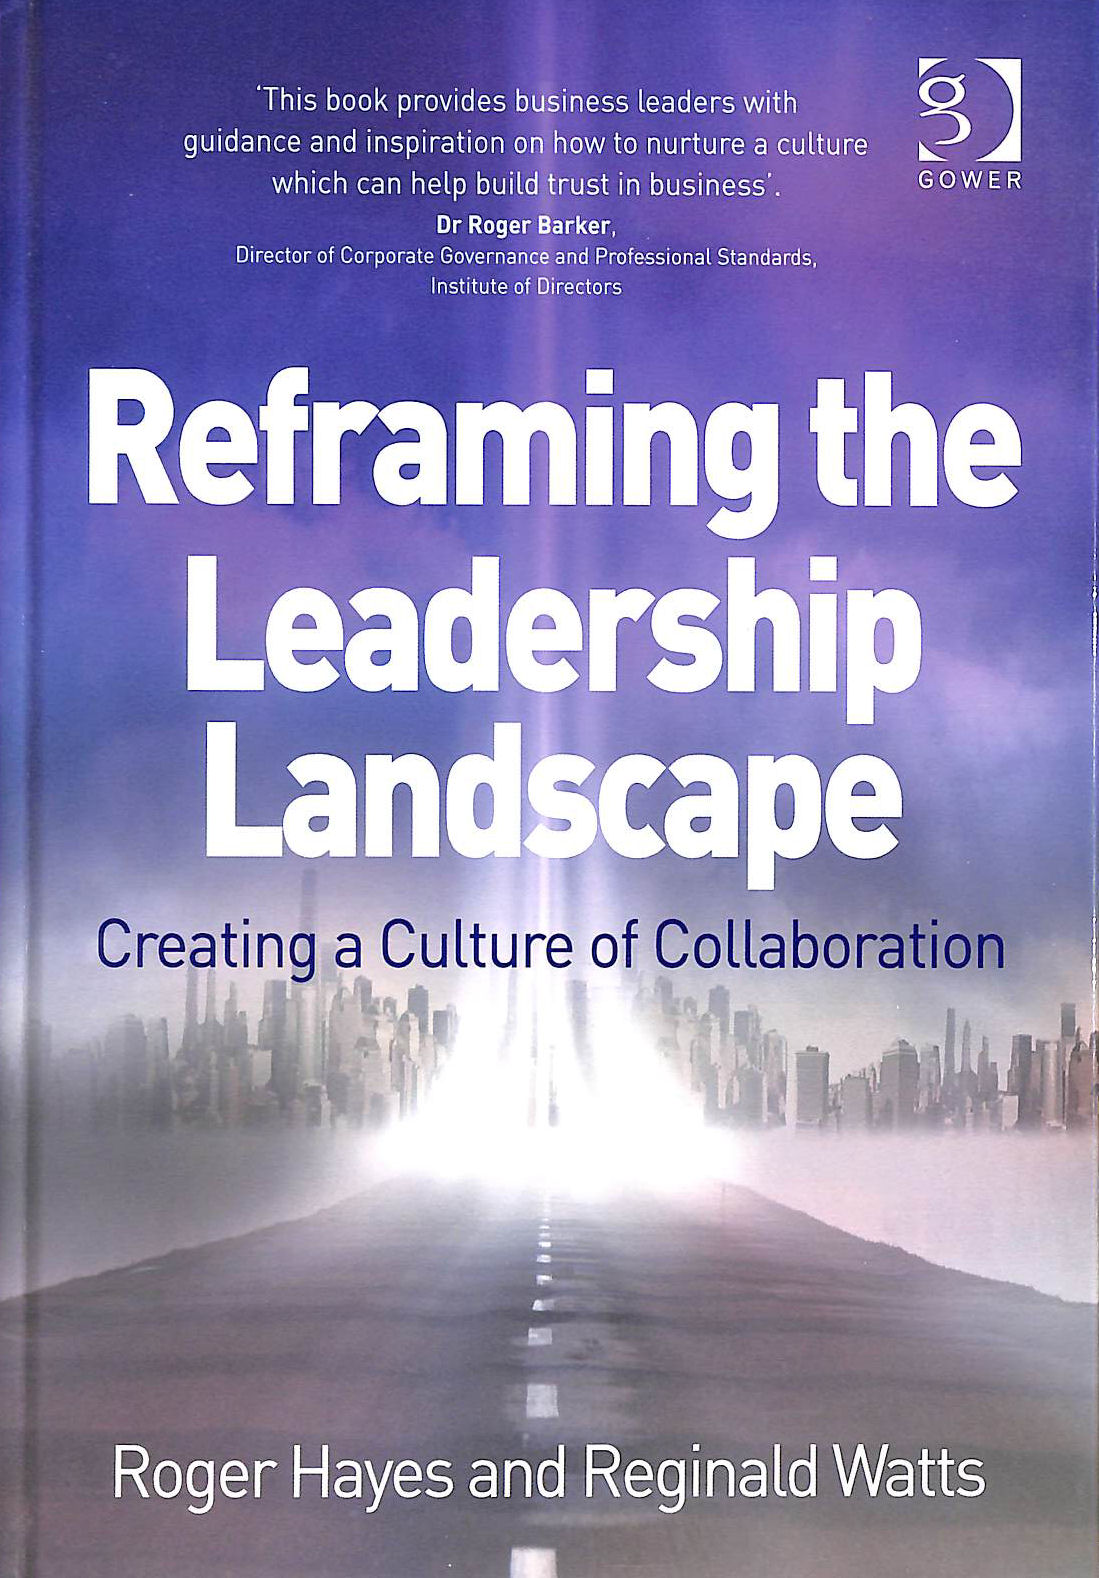 Image for Reframing the Leadership Landscape: Creating a Culture of Collaboration